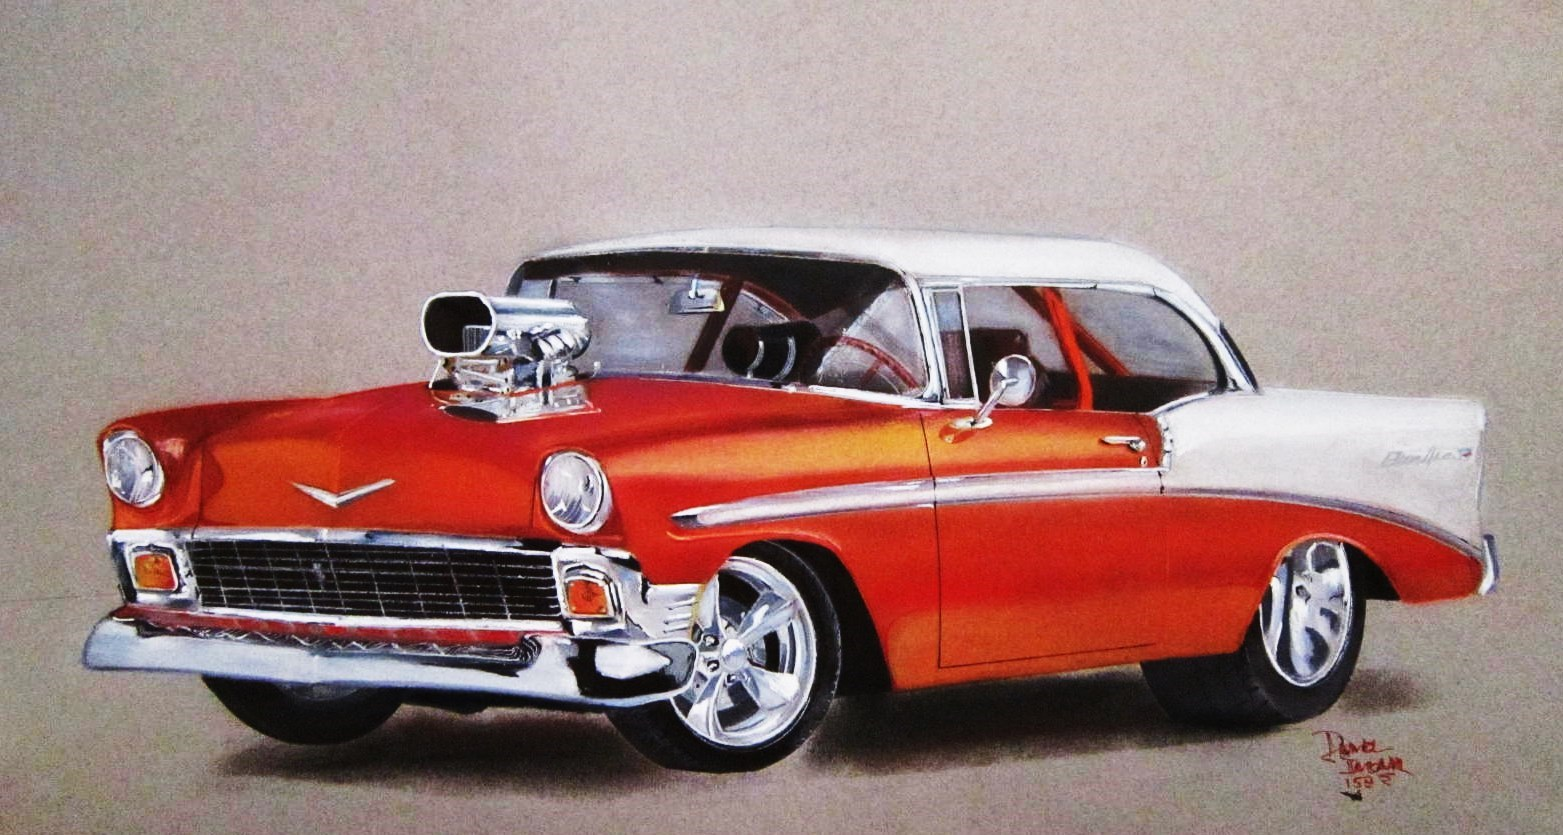 Click image for larger version  Name:56 Chevy no2.JPG Views:166 Size:289.9 KB ID:202794